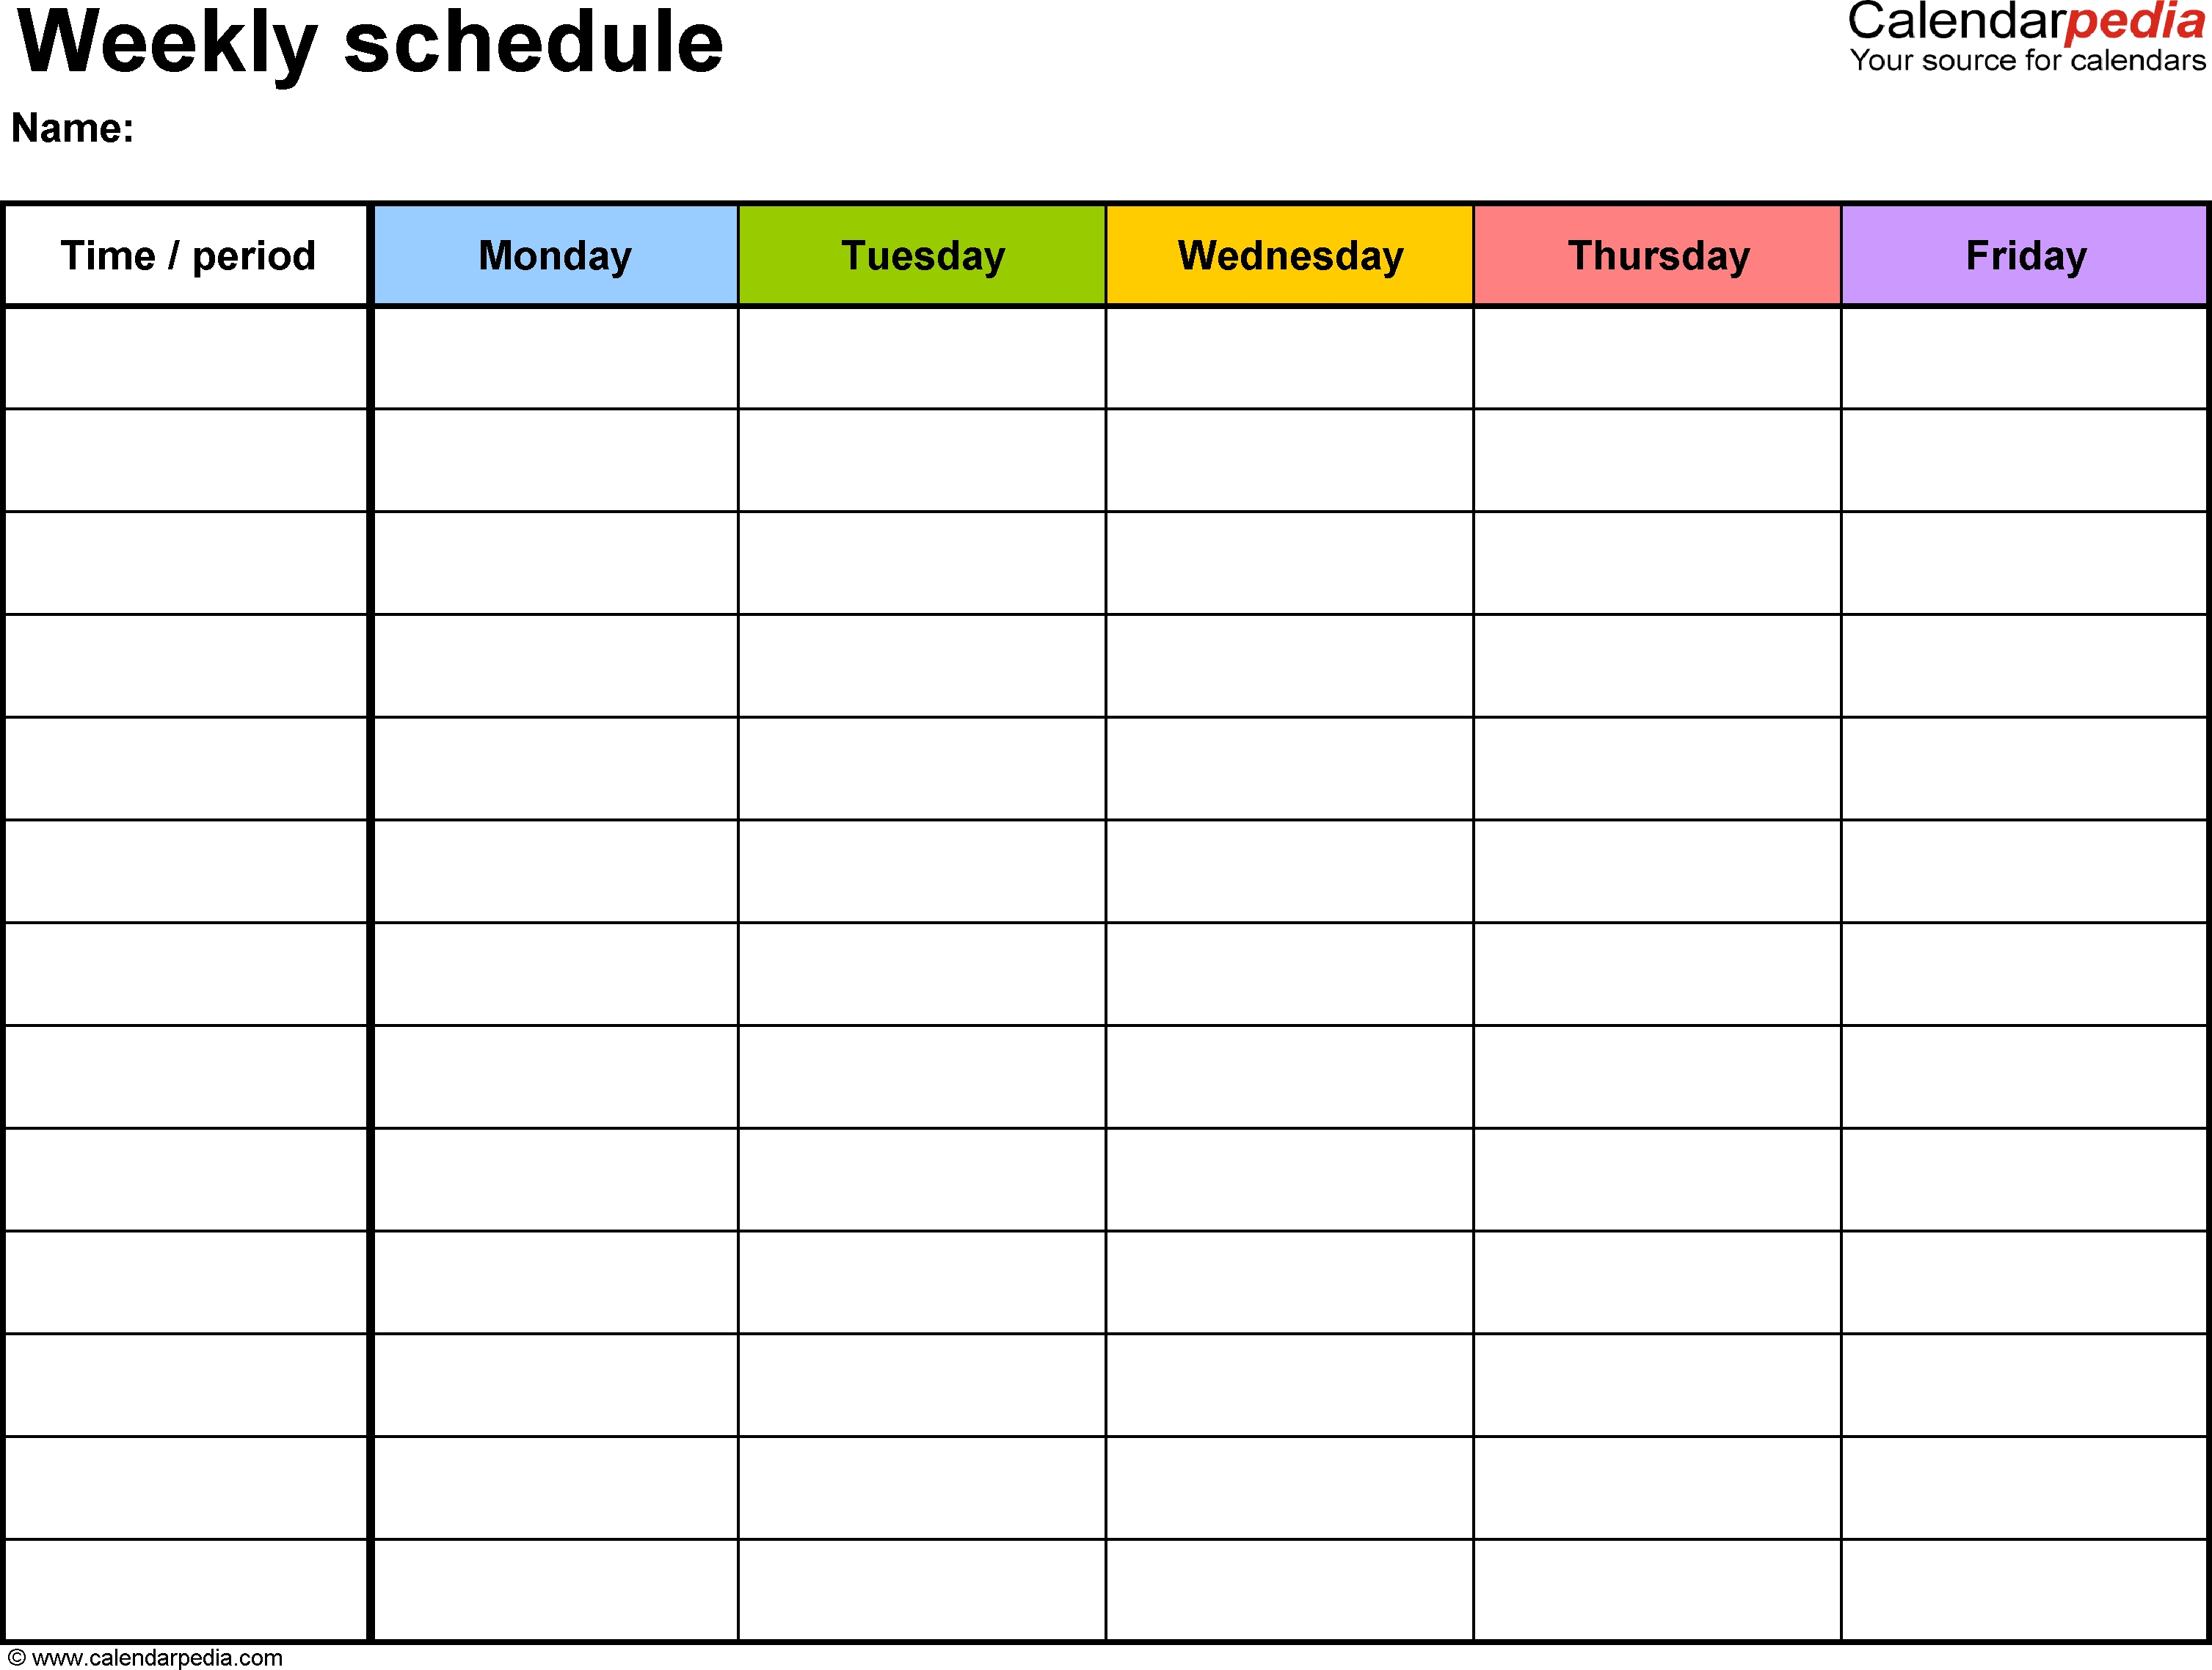 Free Weekly Schedule Templates For Excel - 18 Templates for Monthly Lesson Plan Calendar Template